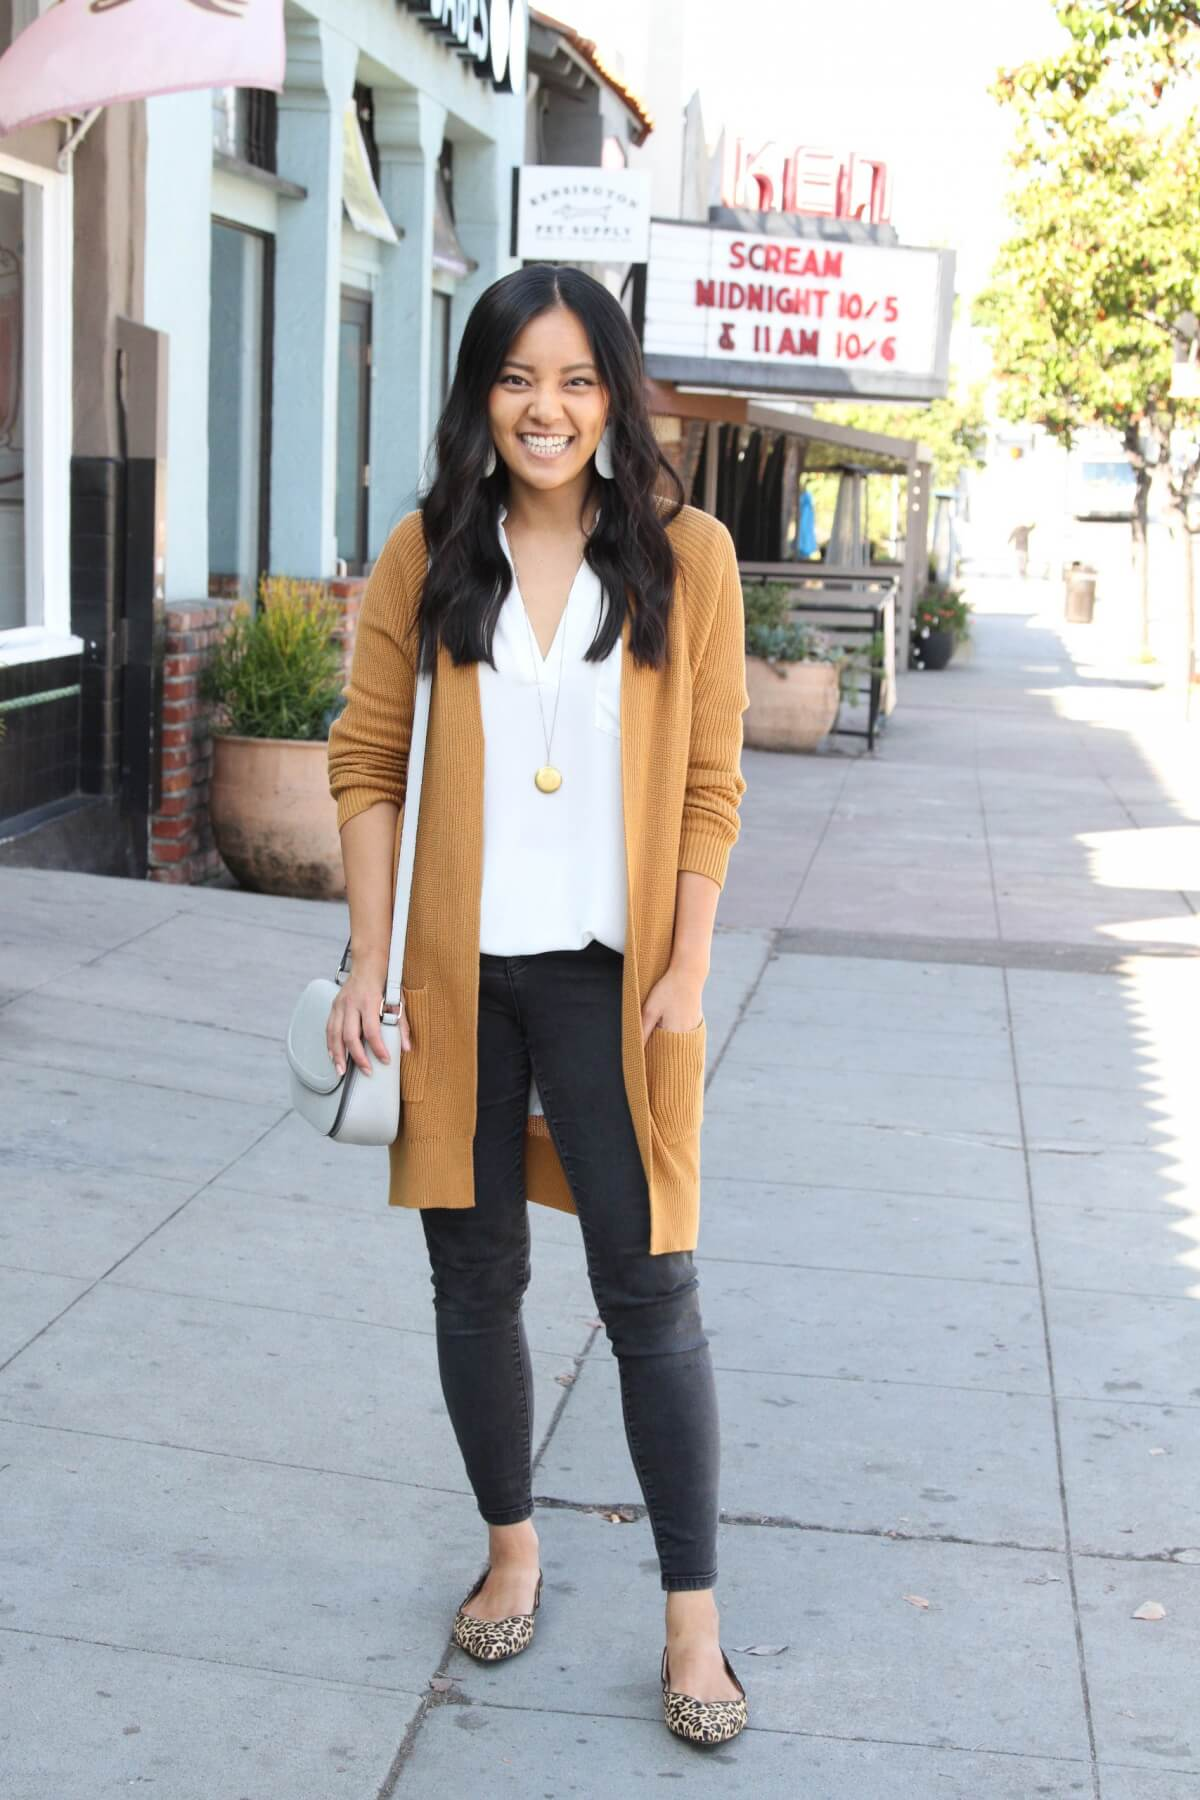 Classic Outfit: white top + camel long cardigan + black jeans + leopard flats + white earrings + pendant necklace + white bag